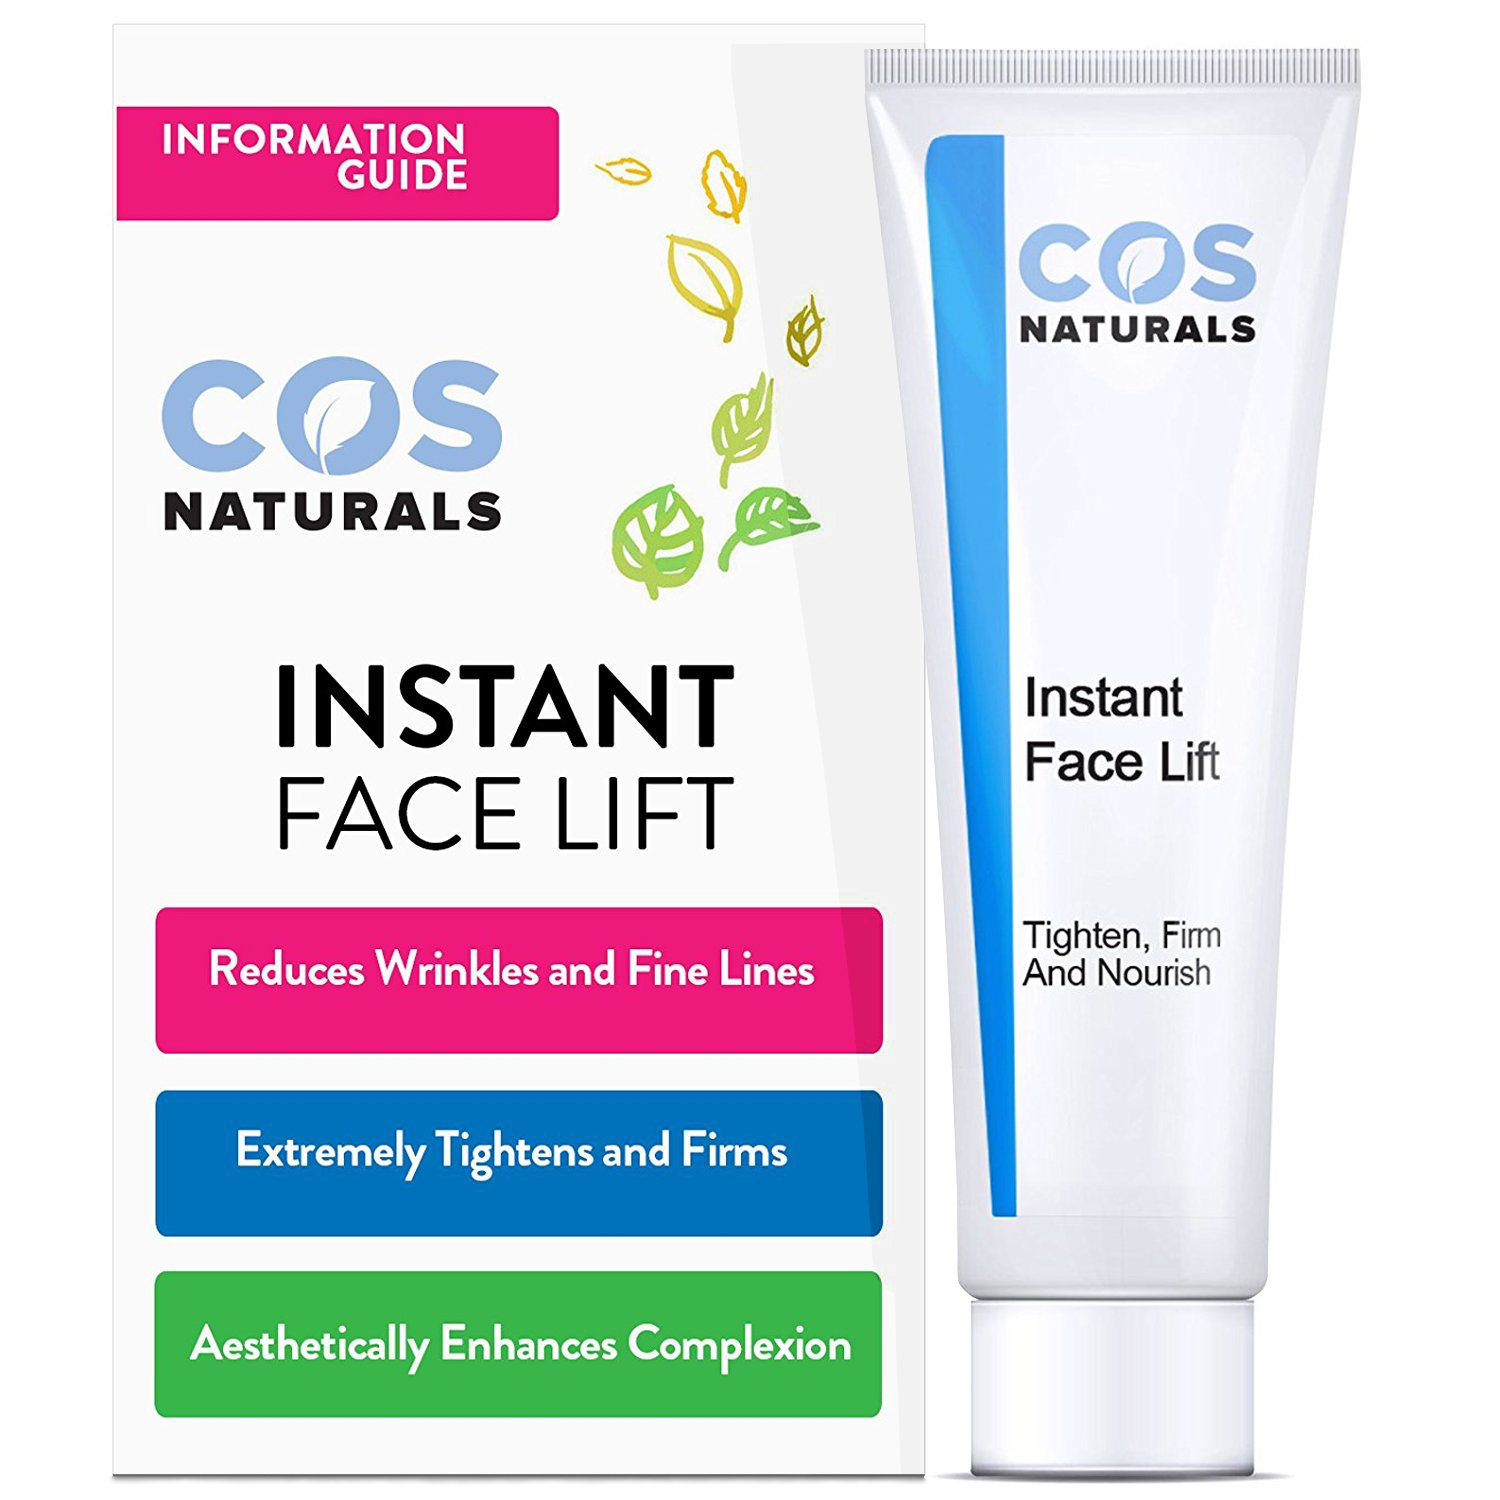 COS Naturals INSTANT FACE LIFT Tighten Firm And Nourish Natural Organic Ingredients Anti Wrinkle Cream Remove Signs of Aging Fine Lines Eye Puffiness Dark Circles Bags Wrinkles 12mL 0.4 fl oz